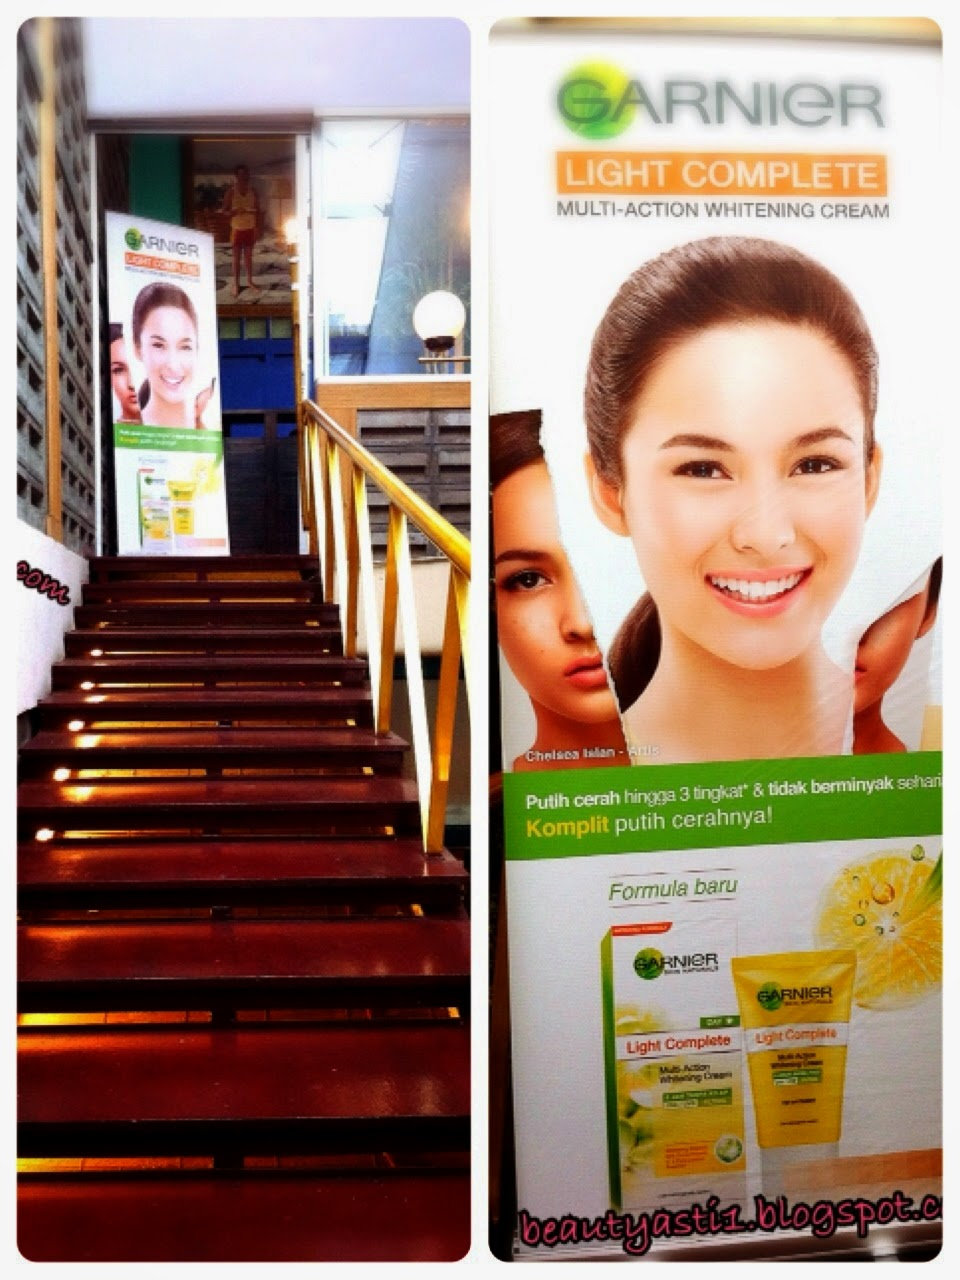 Fastbreaking With Garnier Id Chelsea Islan At Yeyo Cafe Beautyasti1